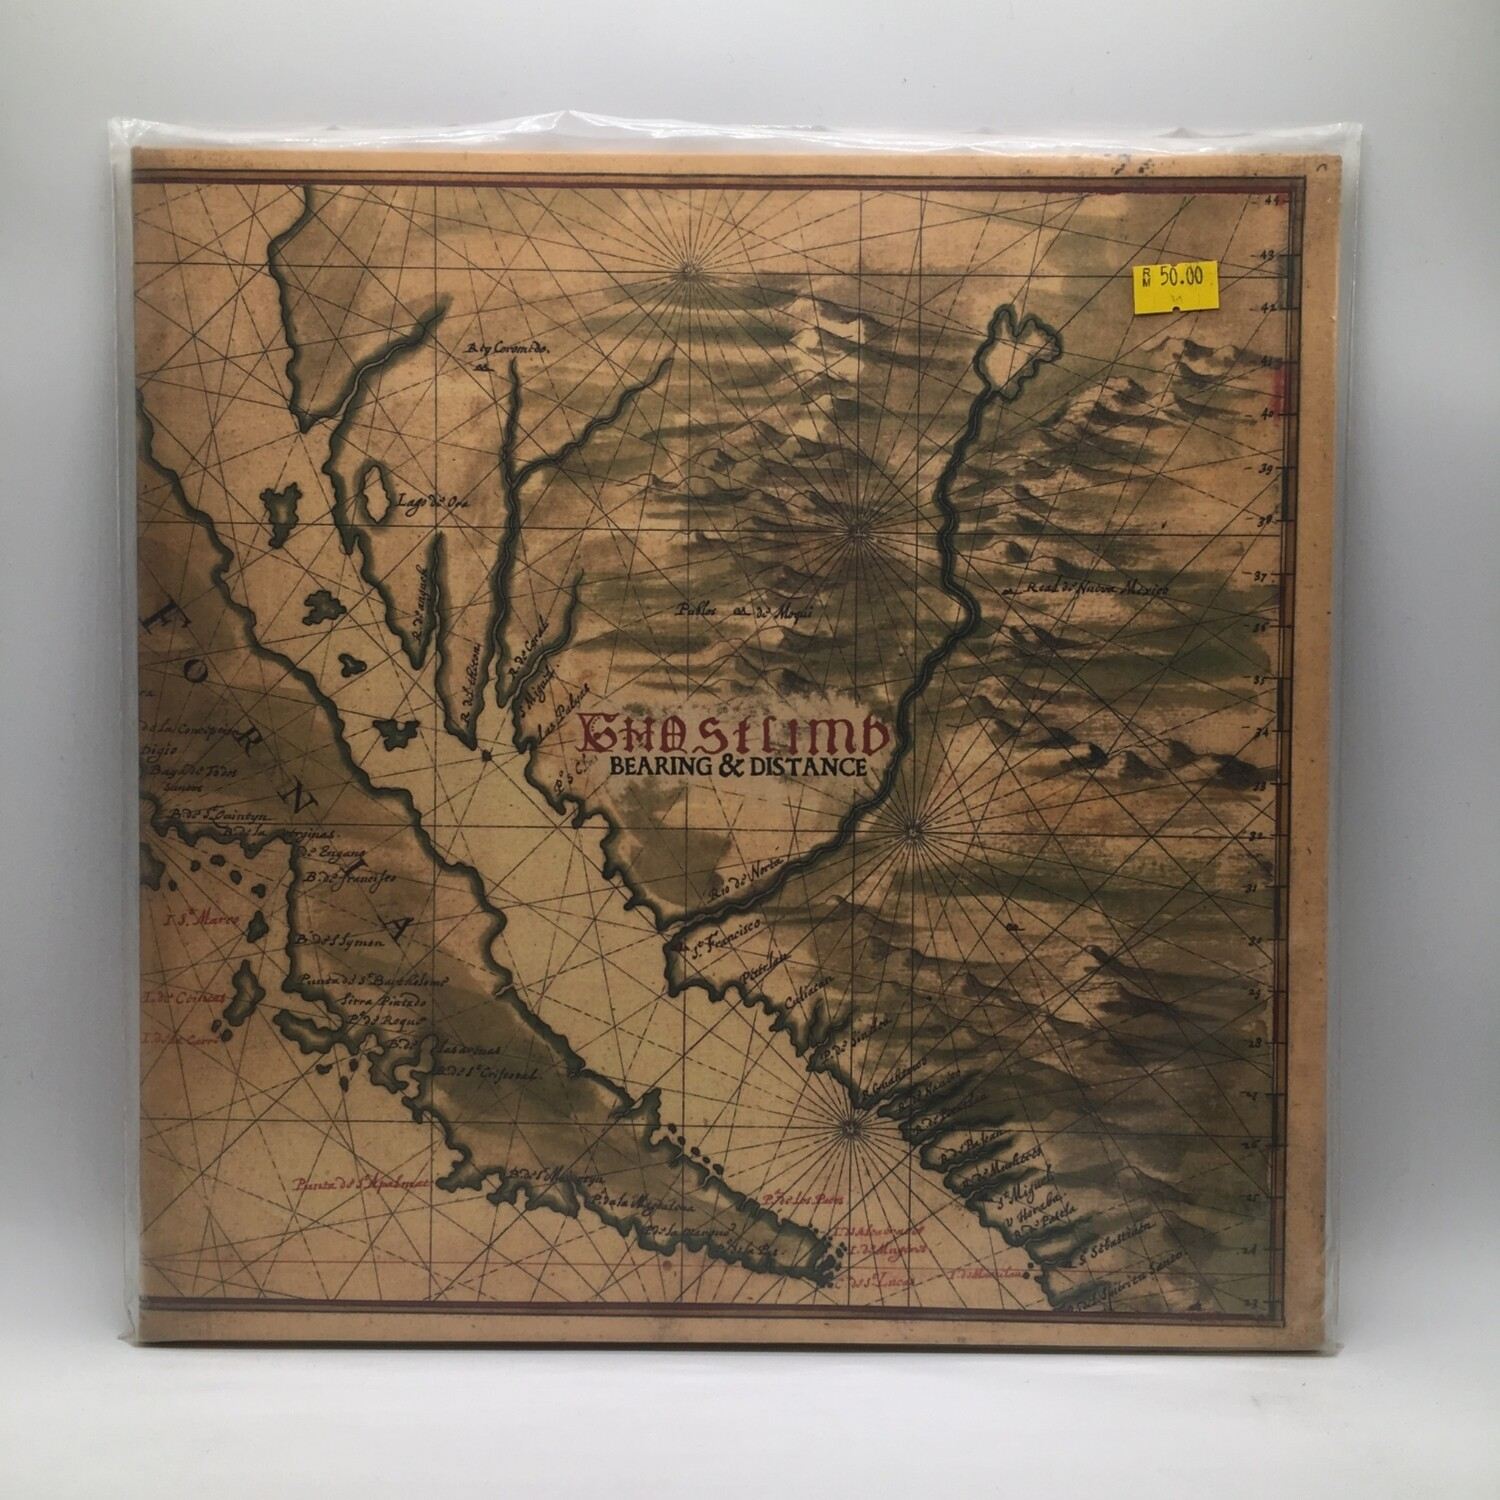 GHOSTLIMB -BEARING AND DISTANCE- LP